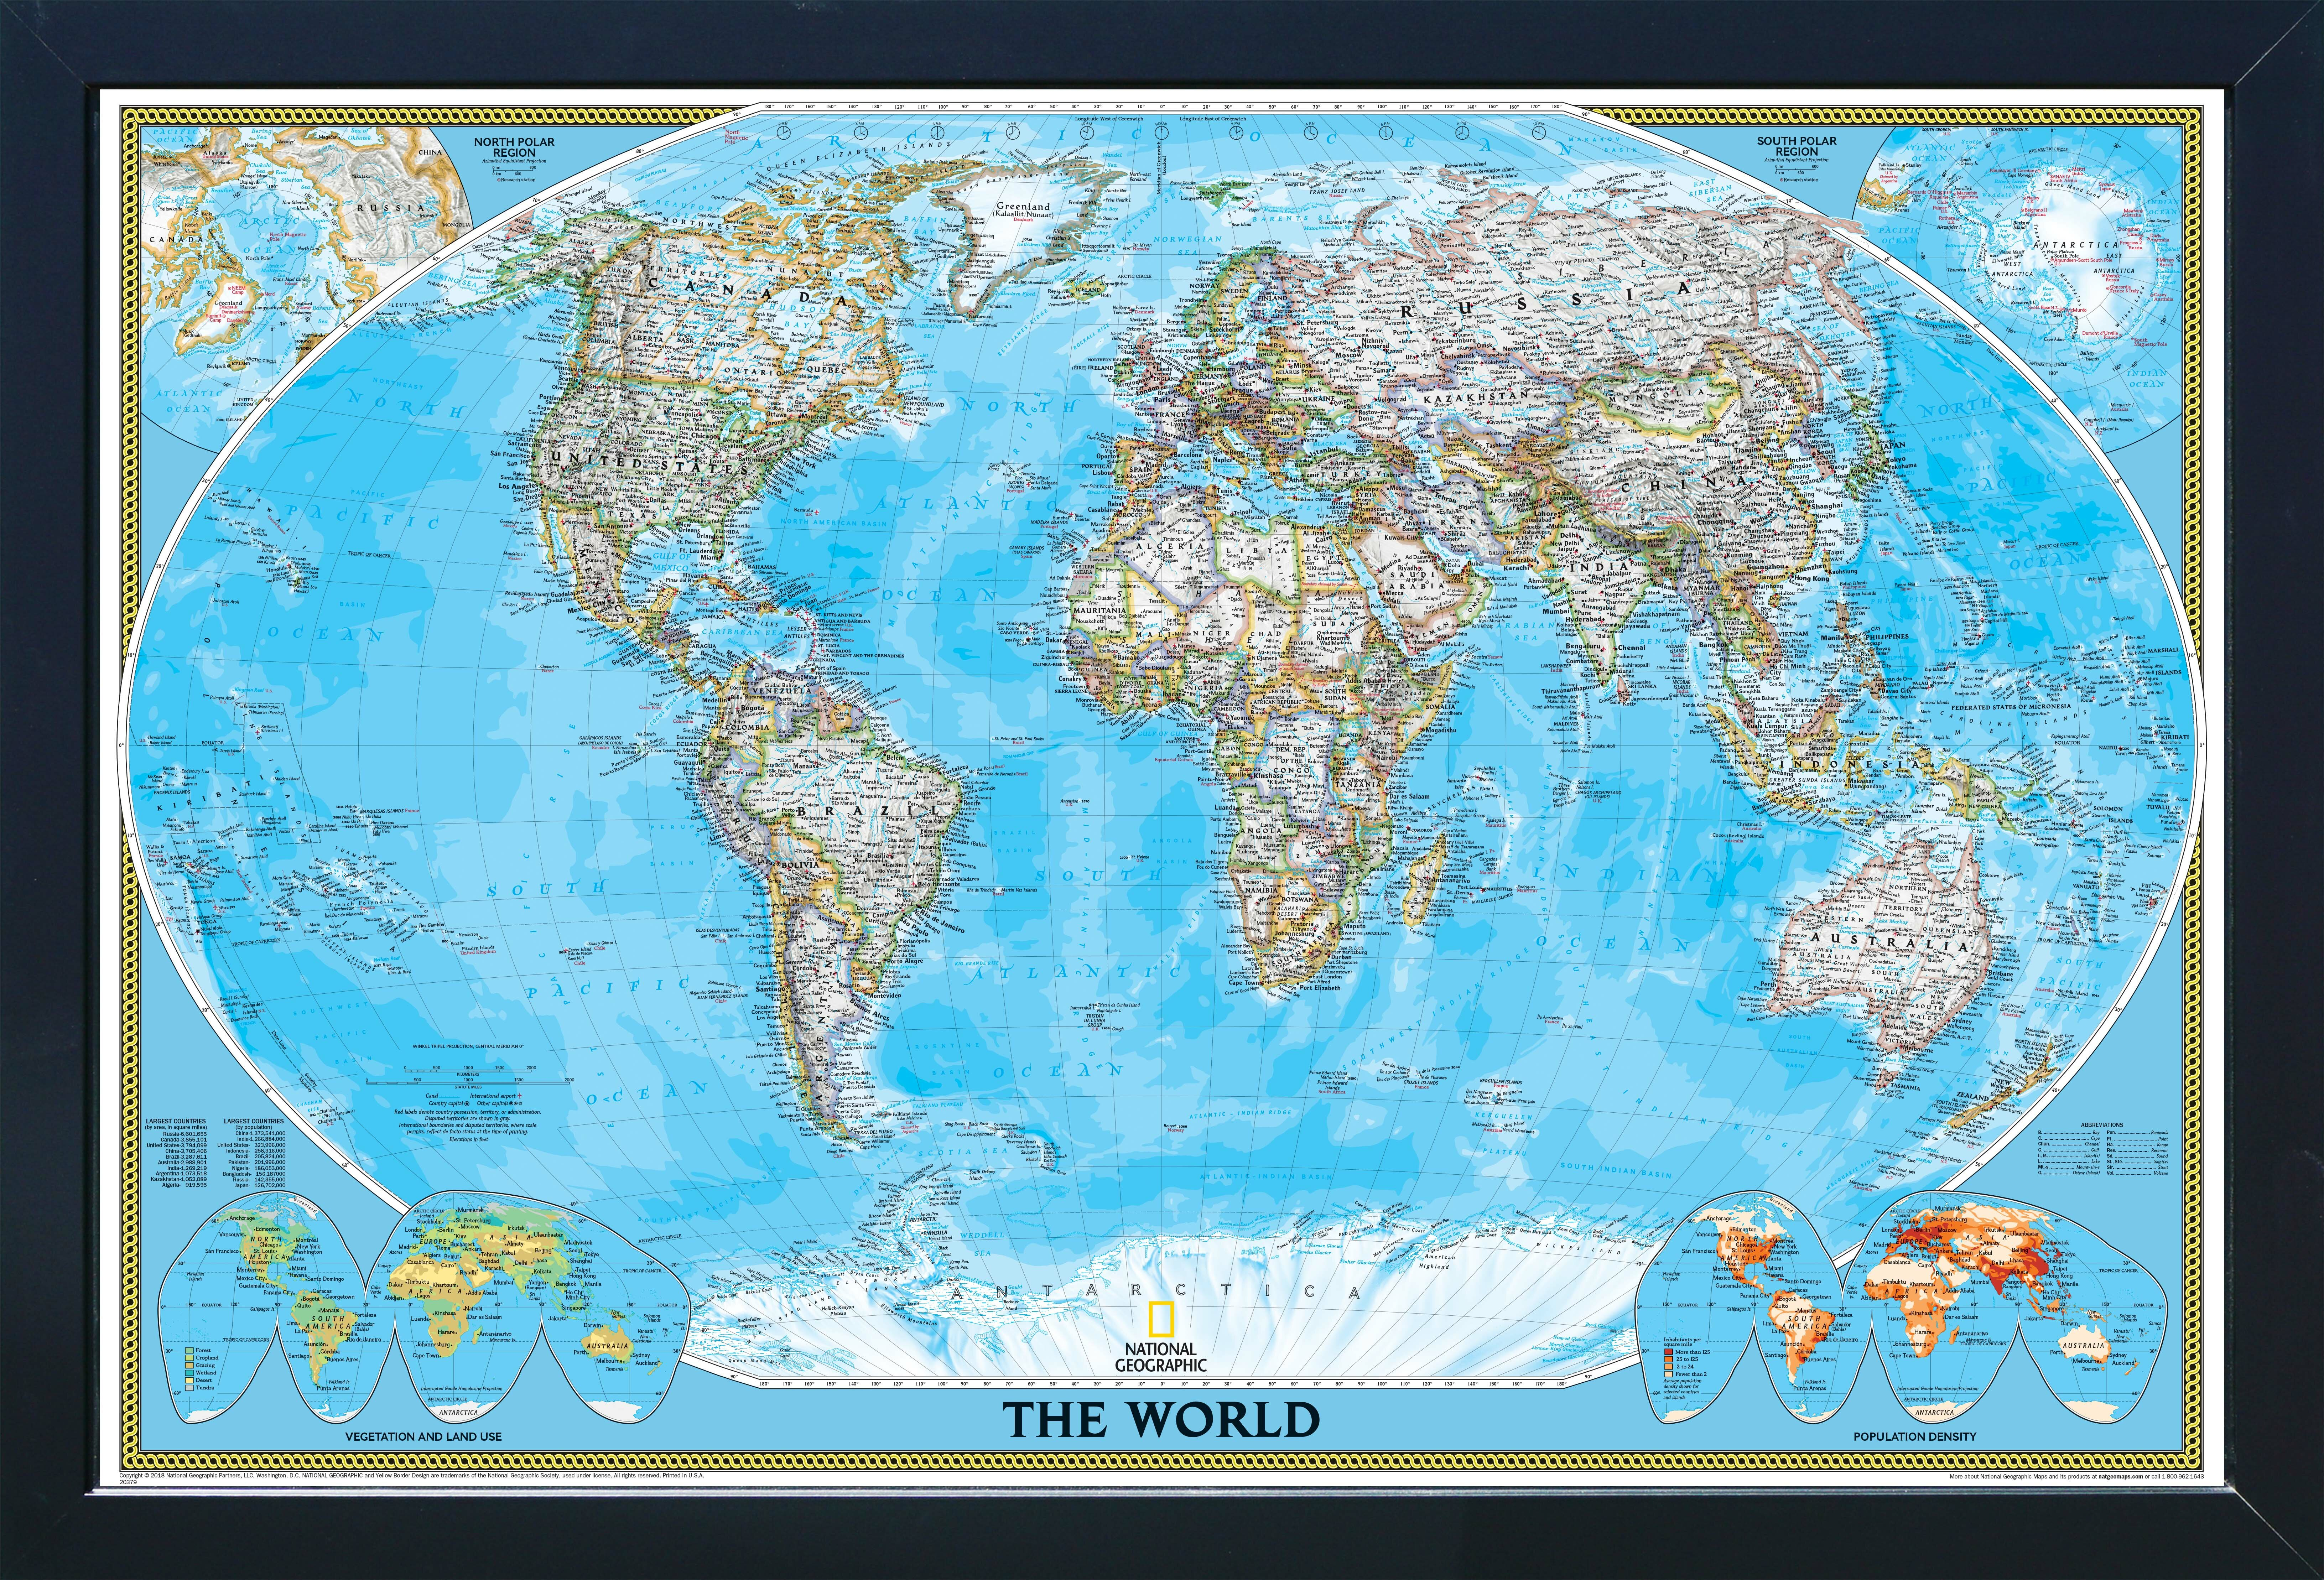 Home Magnetics Magnetic Travel Map National Geographic World Classic Wayfair